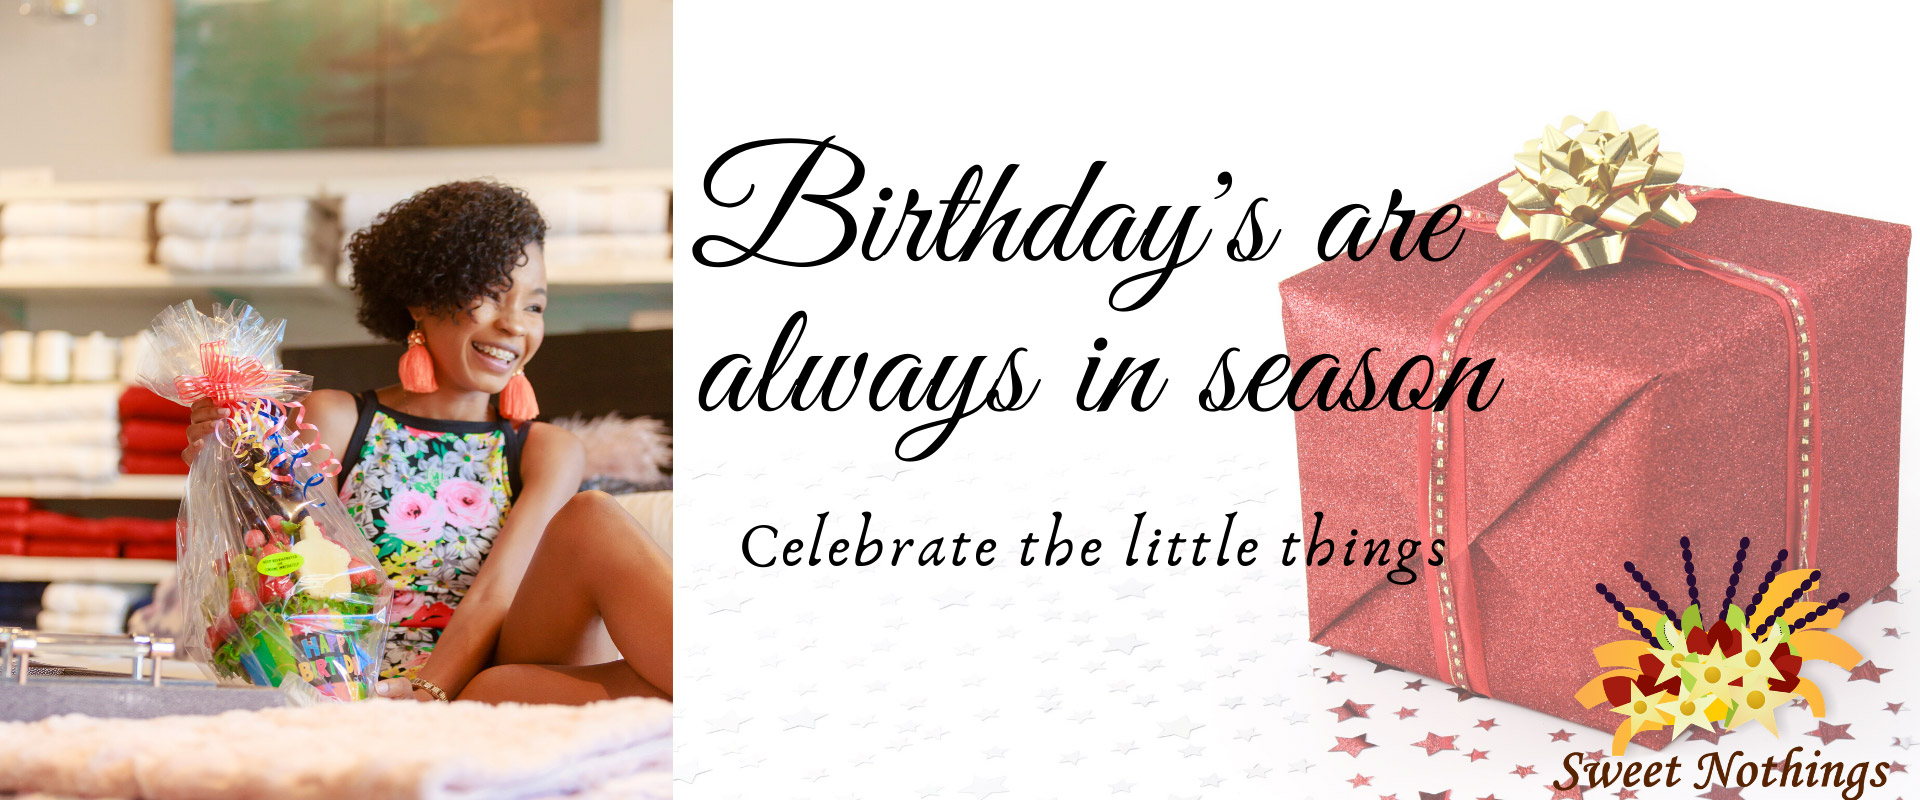 Birthdays-are-always-in-season